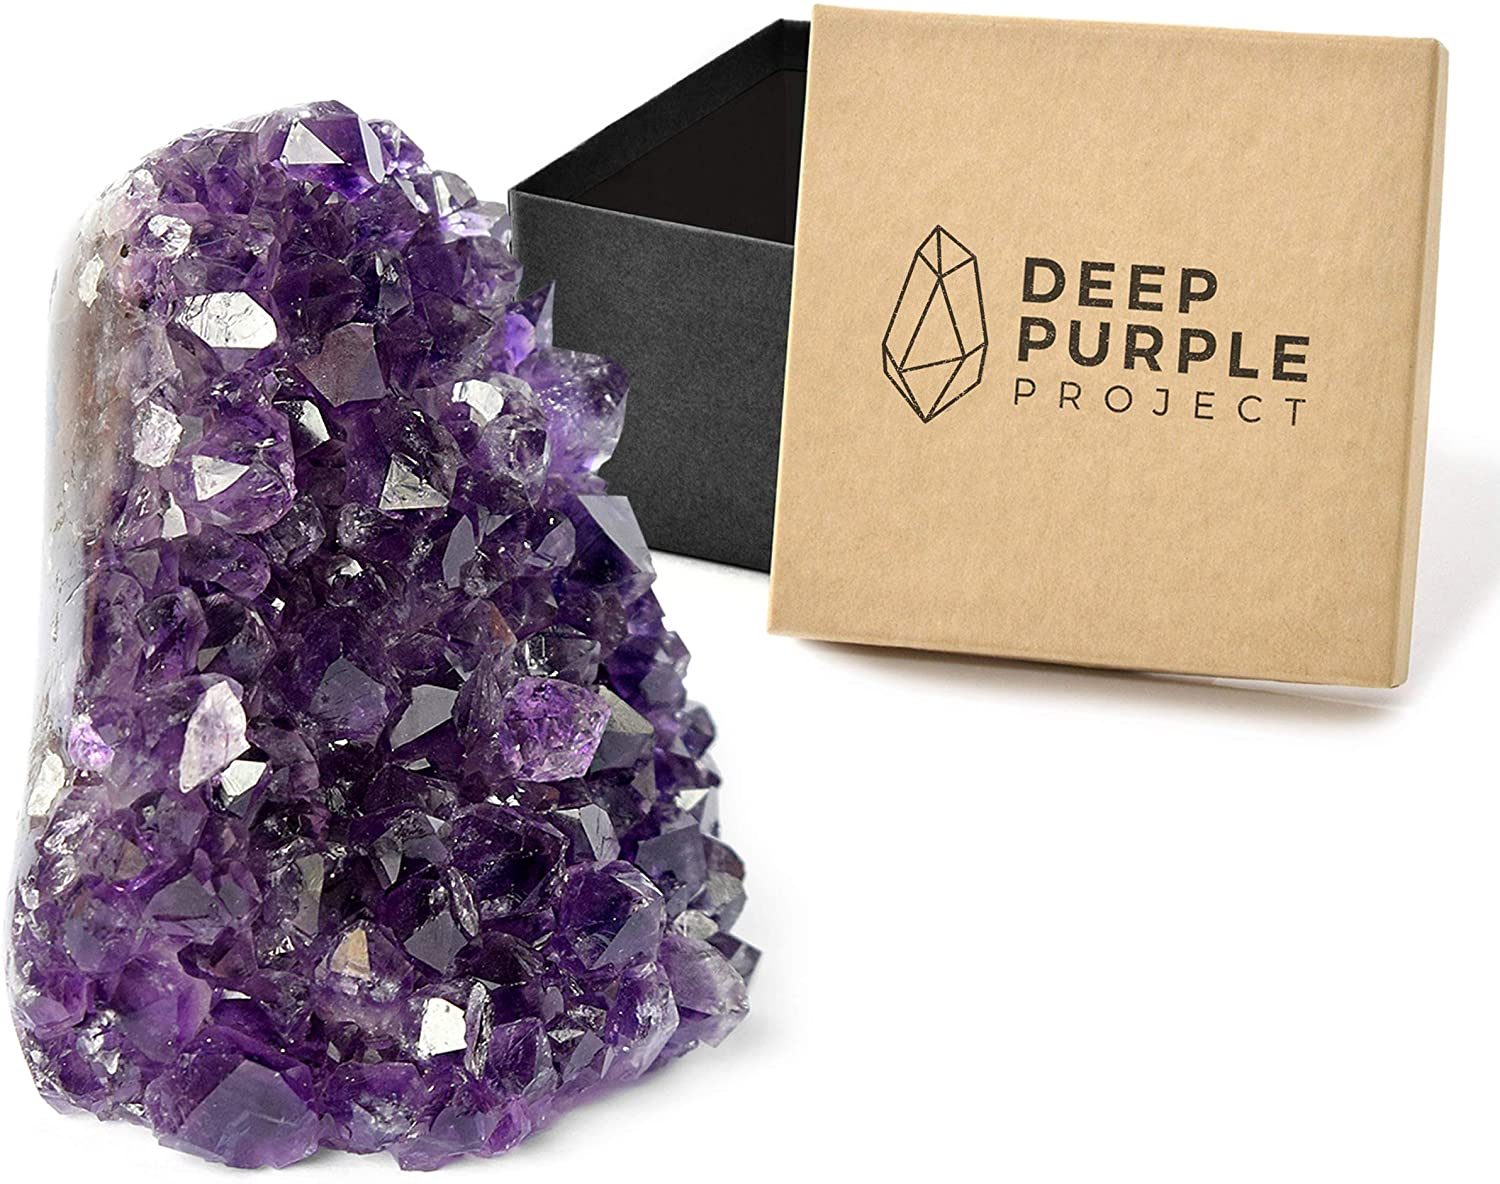 Deep Purple Project Amethyst Crystal Geodes 1/2 to 1 Lb in a Premium Gift Box, Large Clusters Perfect for Spiritual Home Decor, Polished Quartz from Uruguay